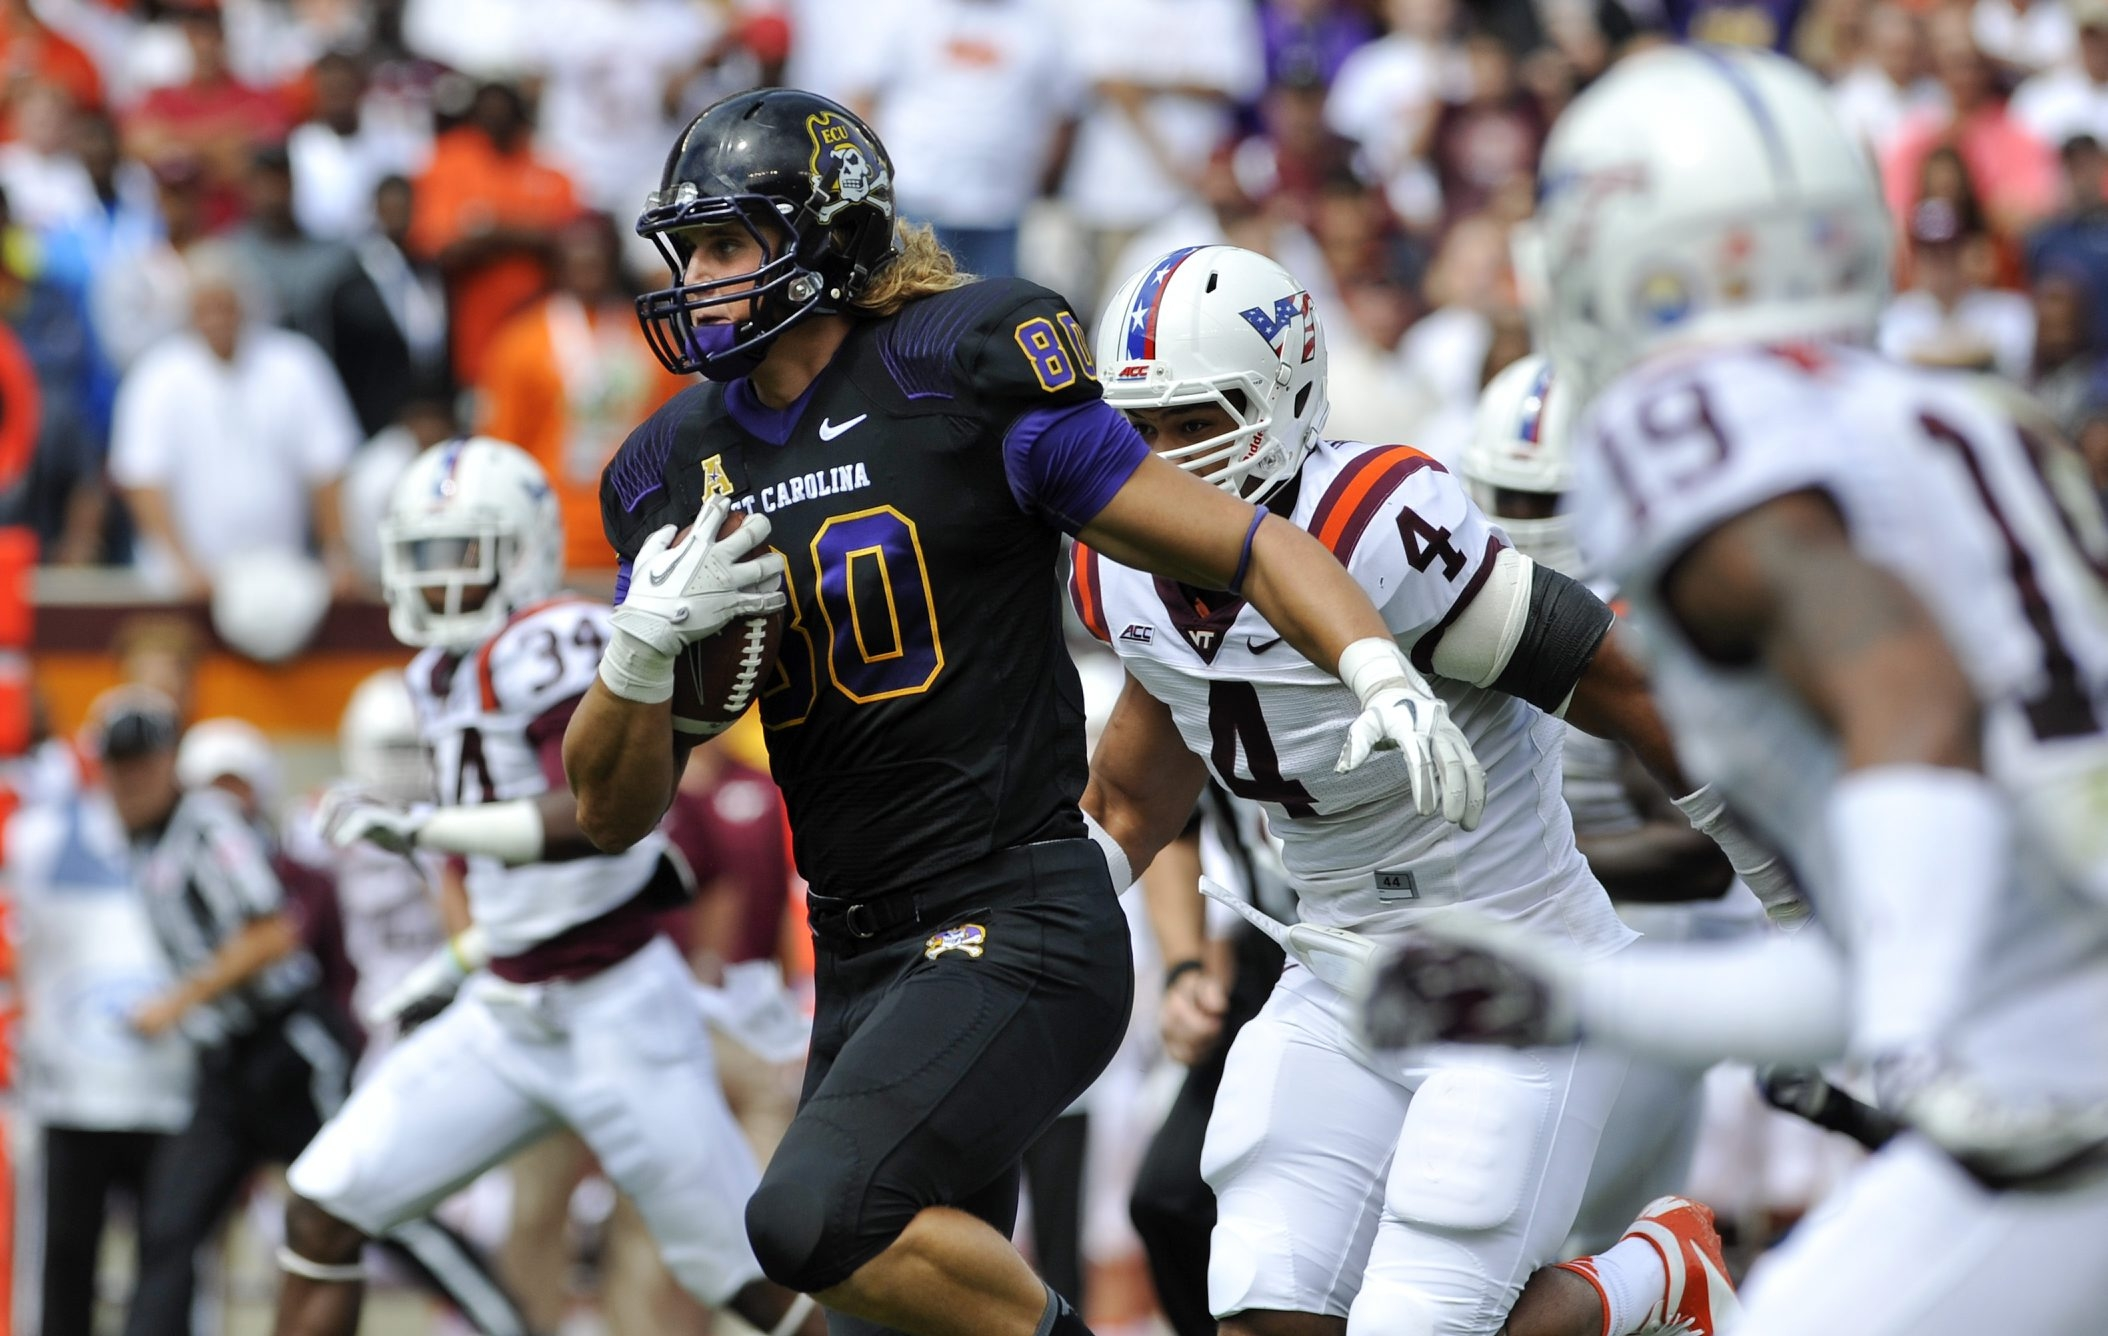 Tight end Bryce Williams of the East Carolina Pirates made all-American Athletic Conference in three consecutive seasons.